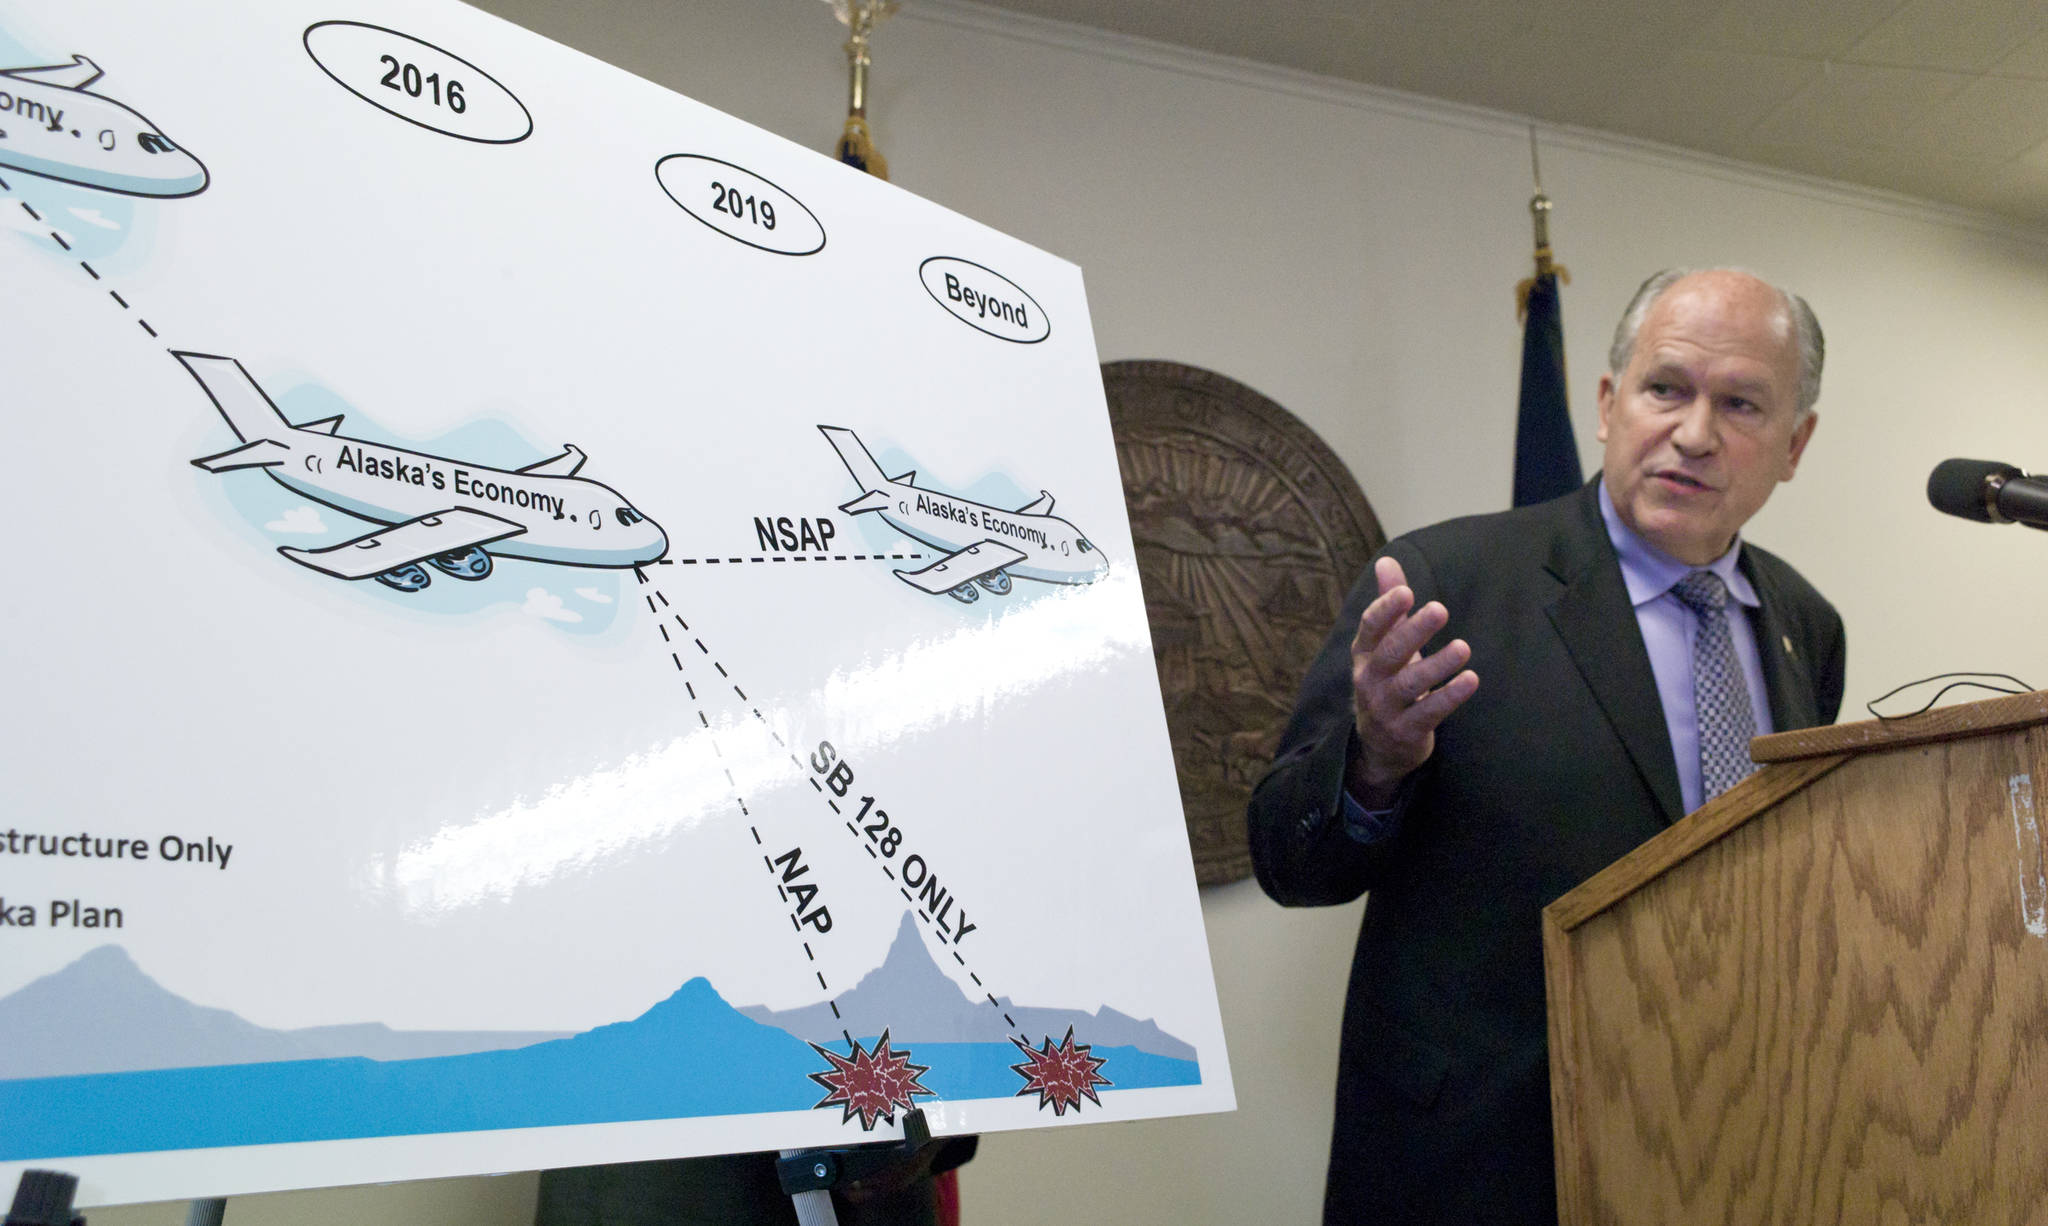 In this July 14, 2016 photo, Gov. Bill Walker points to a chart during a press conference that uses a crashing jet to show possible scenarios for Alaska economy if the legislature fails to act during its special session. (Michael Penn | Juneau Empire File)